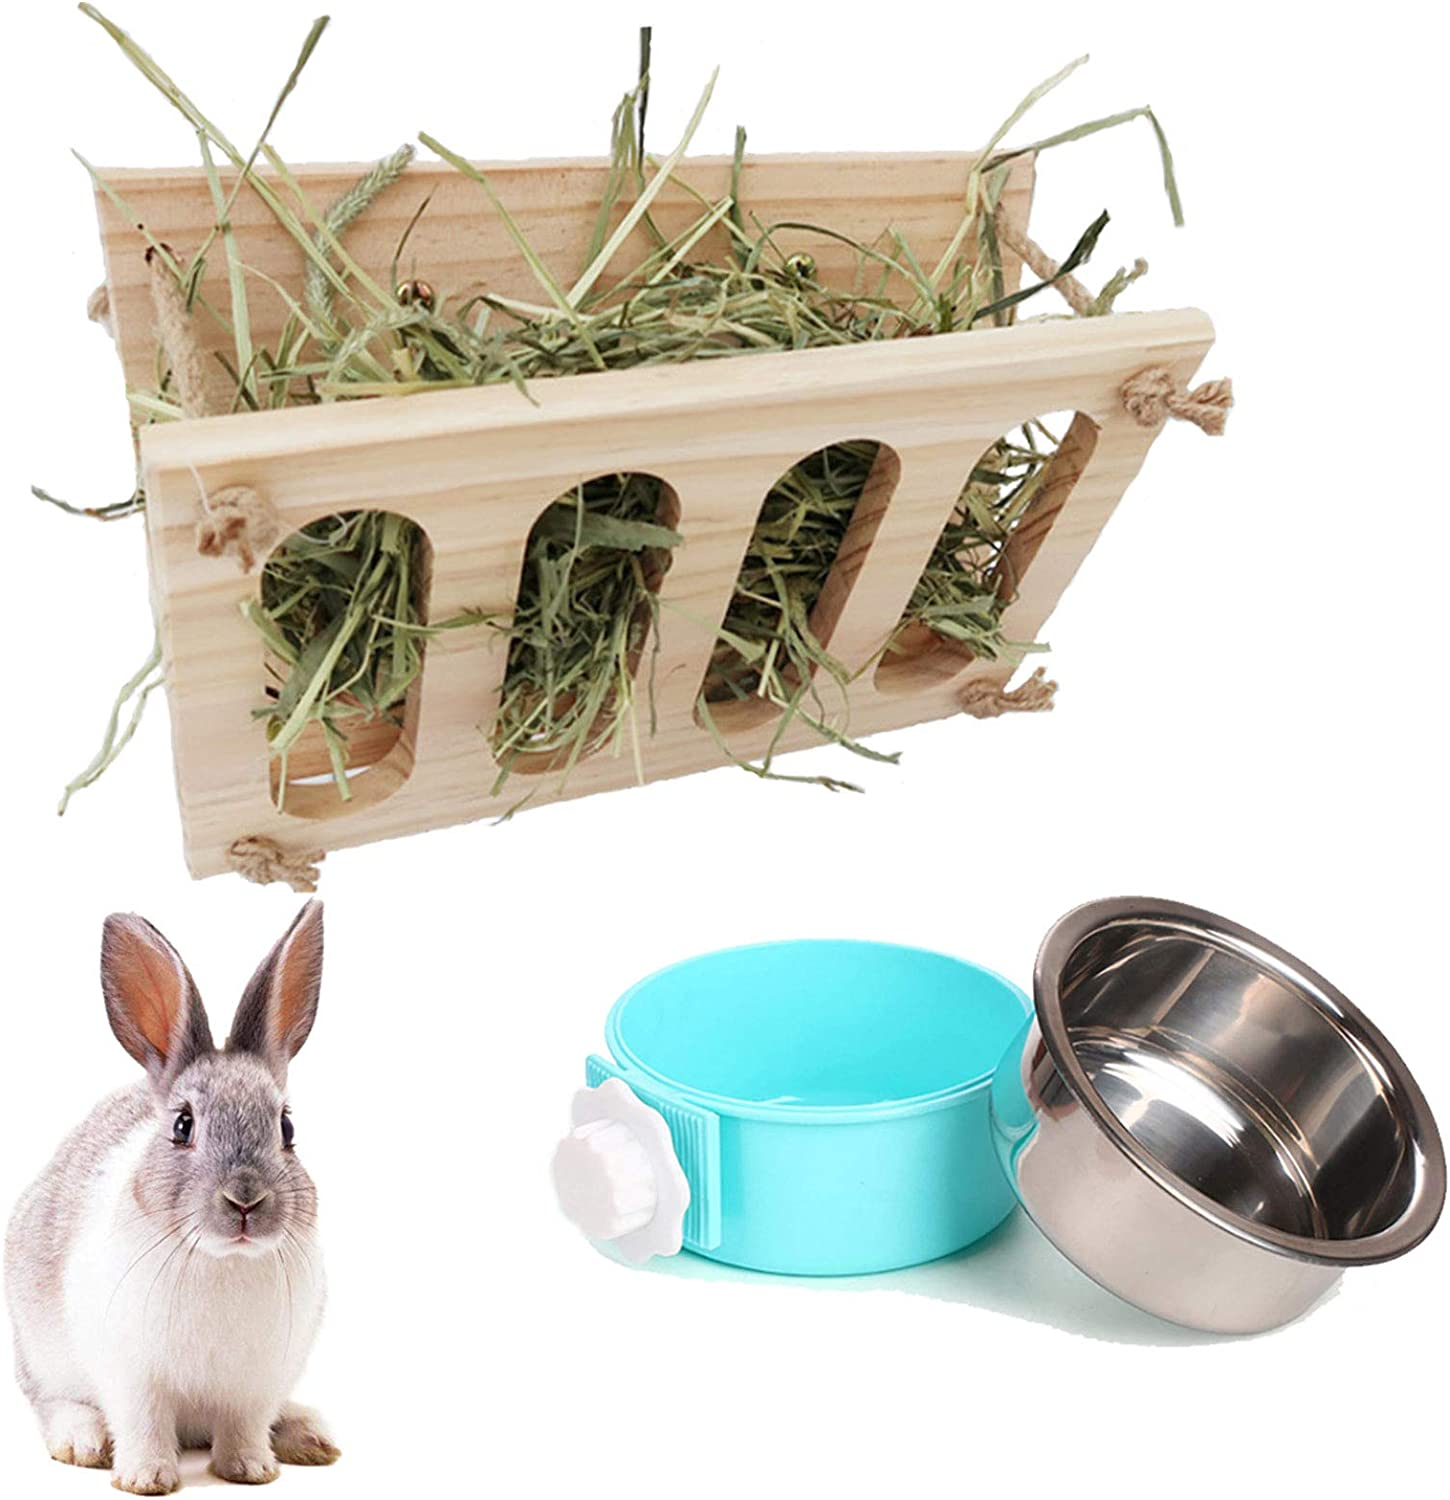 Rabbit Hay Feeder Natural Wooden Hay Manger with Removable Stainless Steel Crate Bowl Water Food Feeder for Rabbits, Chinchilla, Hamster and Guinea Pigs